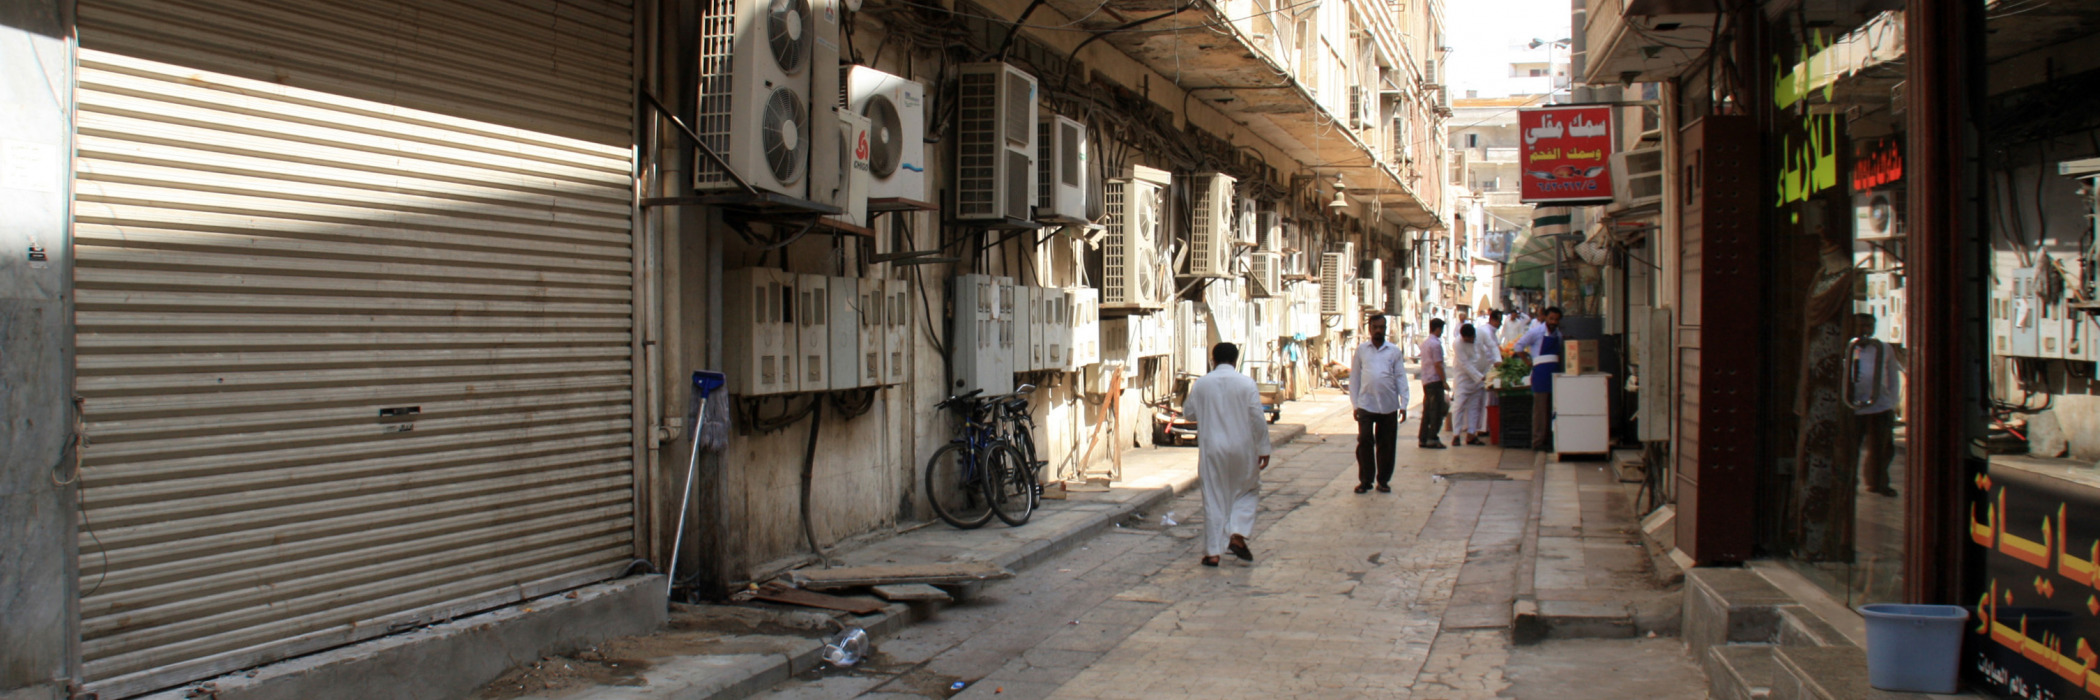 A street in Jeddah, Saudi Arabia: As the world decarbonizes, it does not necessarily become more democratic.